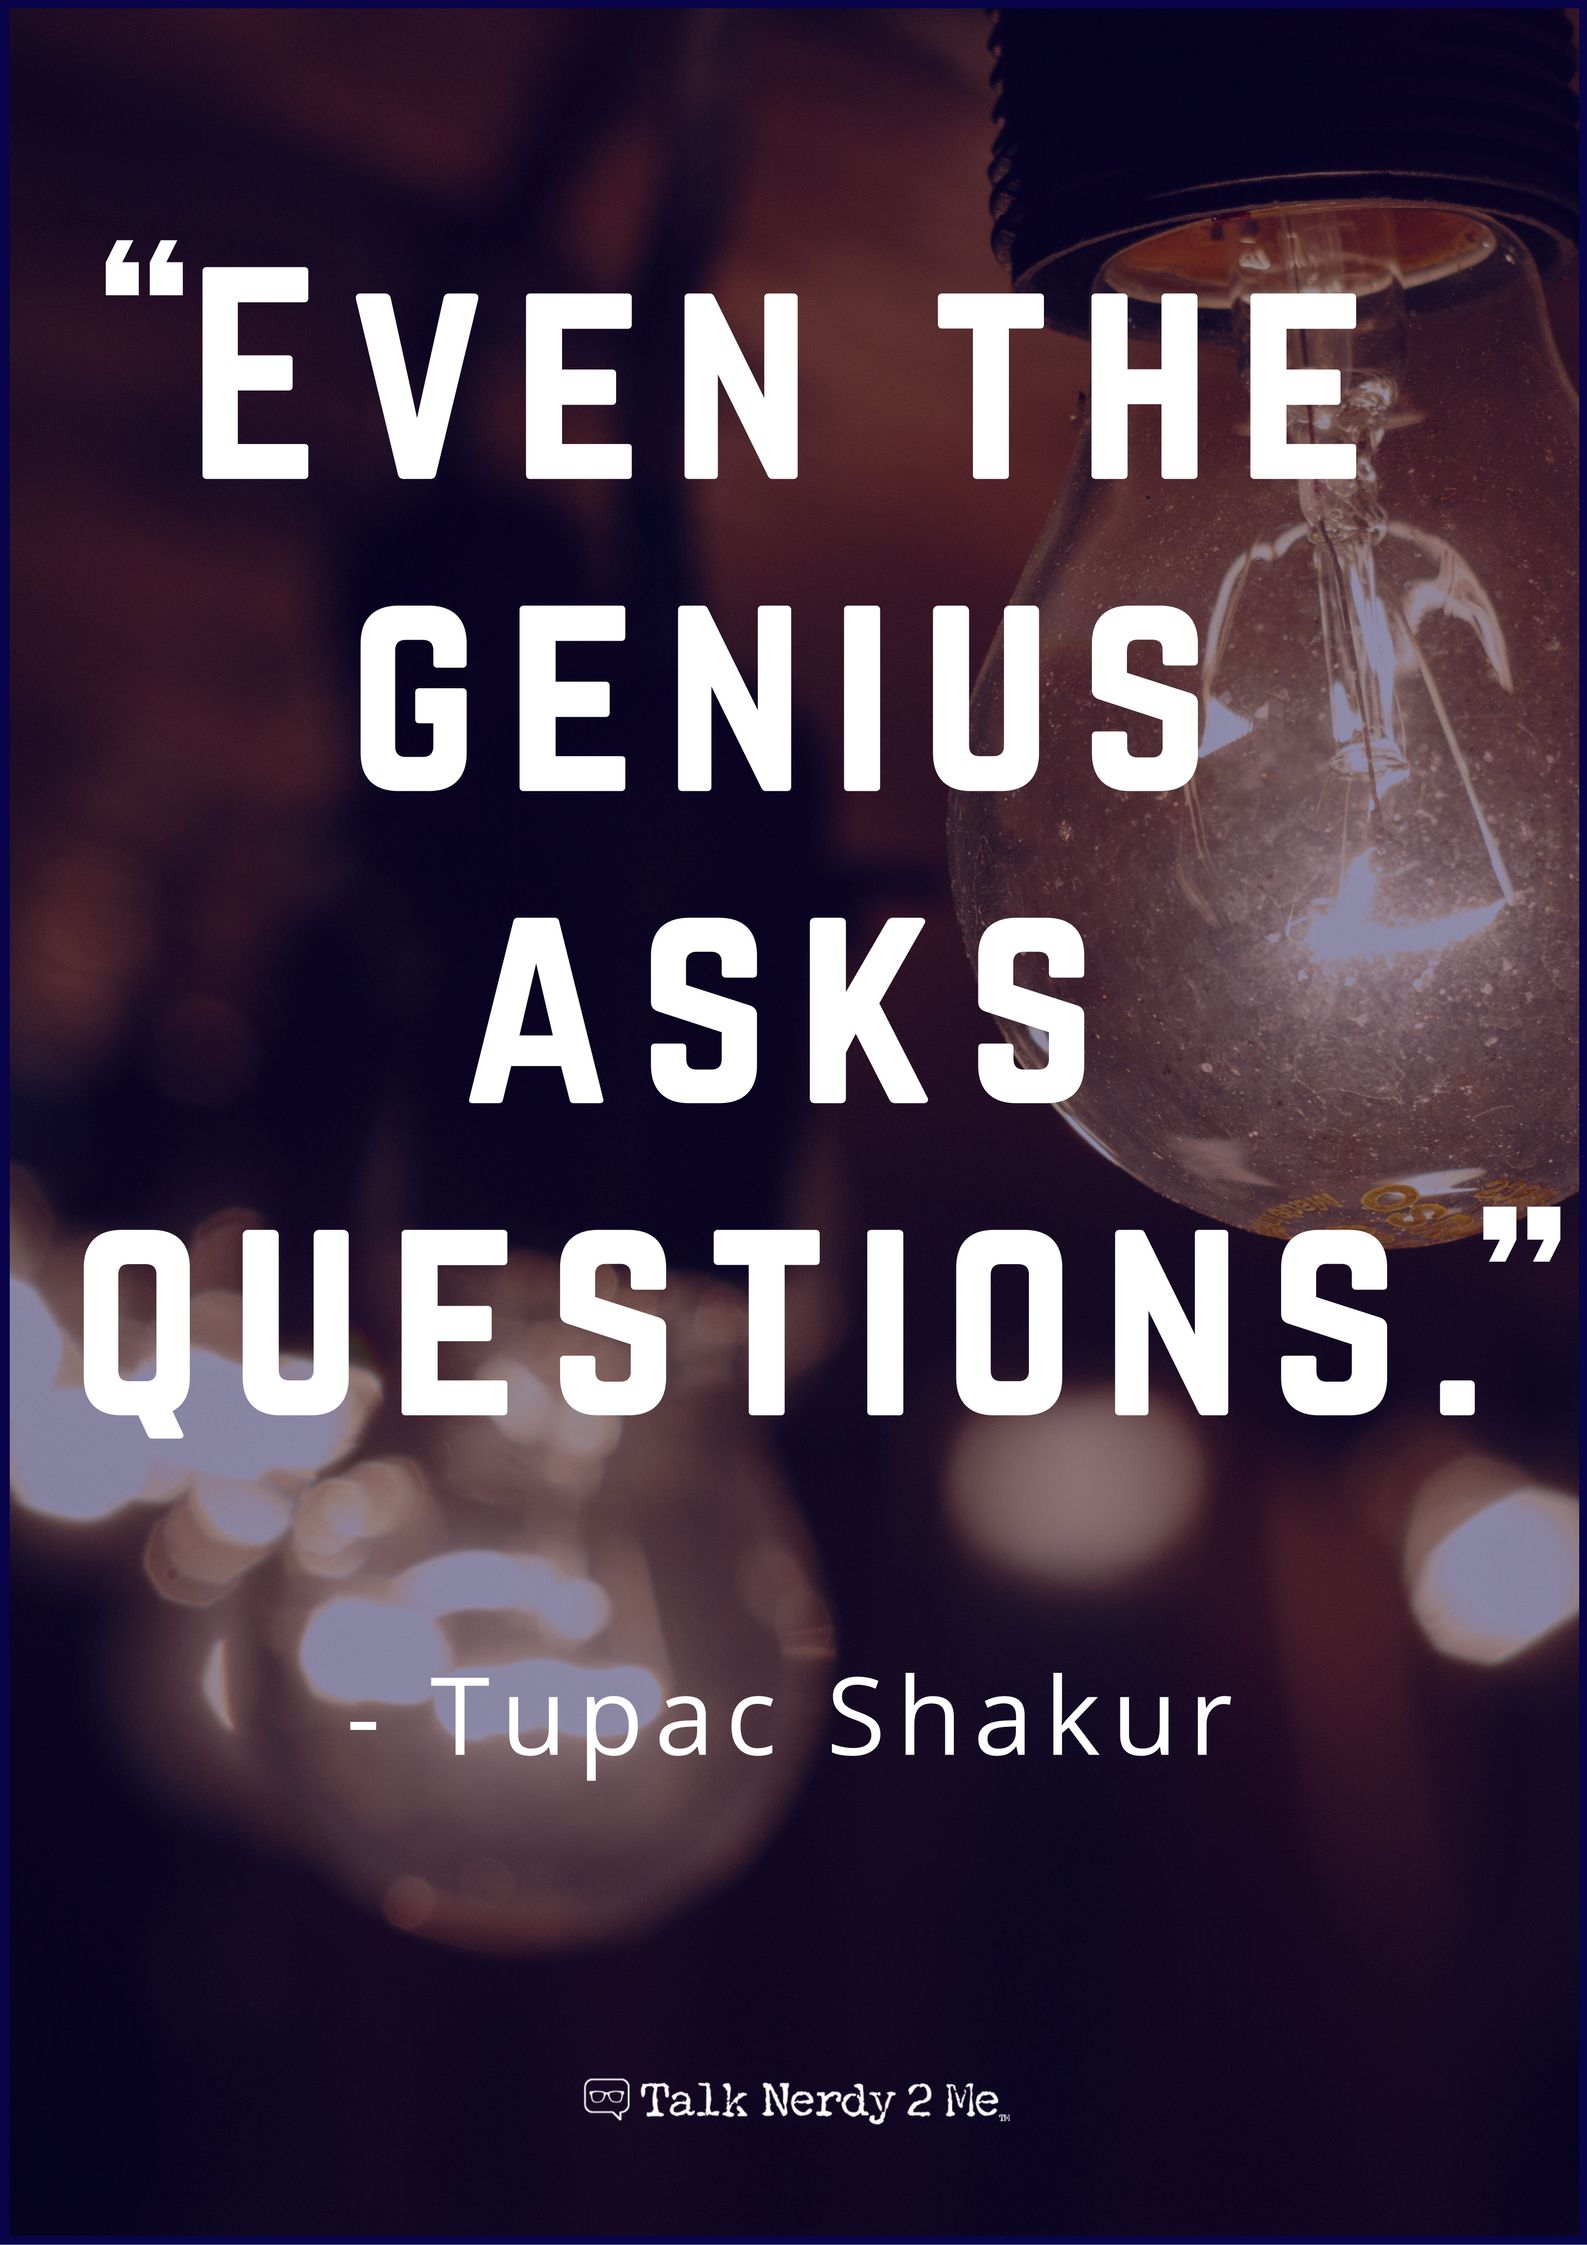 Even The Genius Asks Questions Tupac Shakur Tn2m Inspogeek Inspirational Quotes Me Quotes Quotes